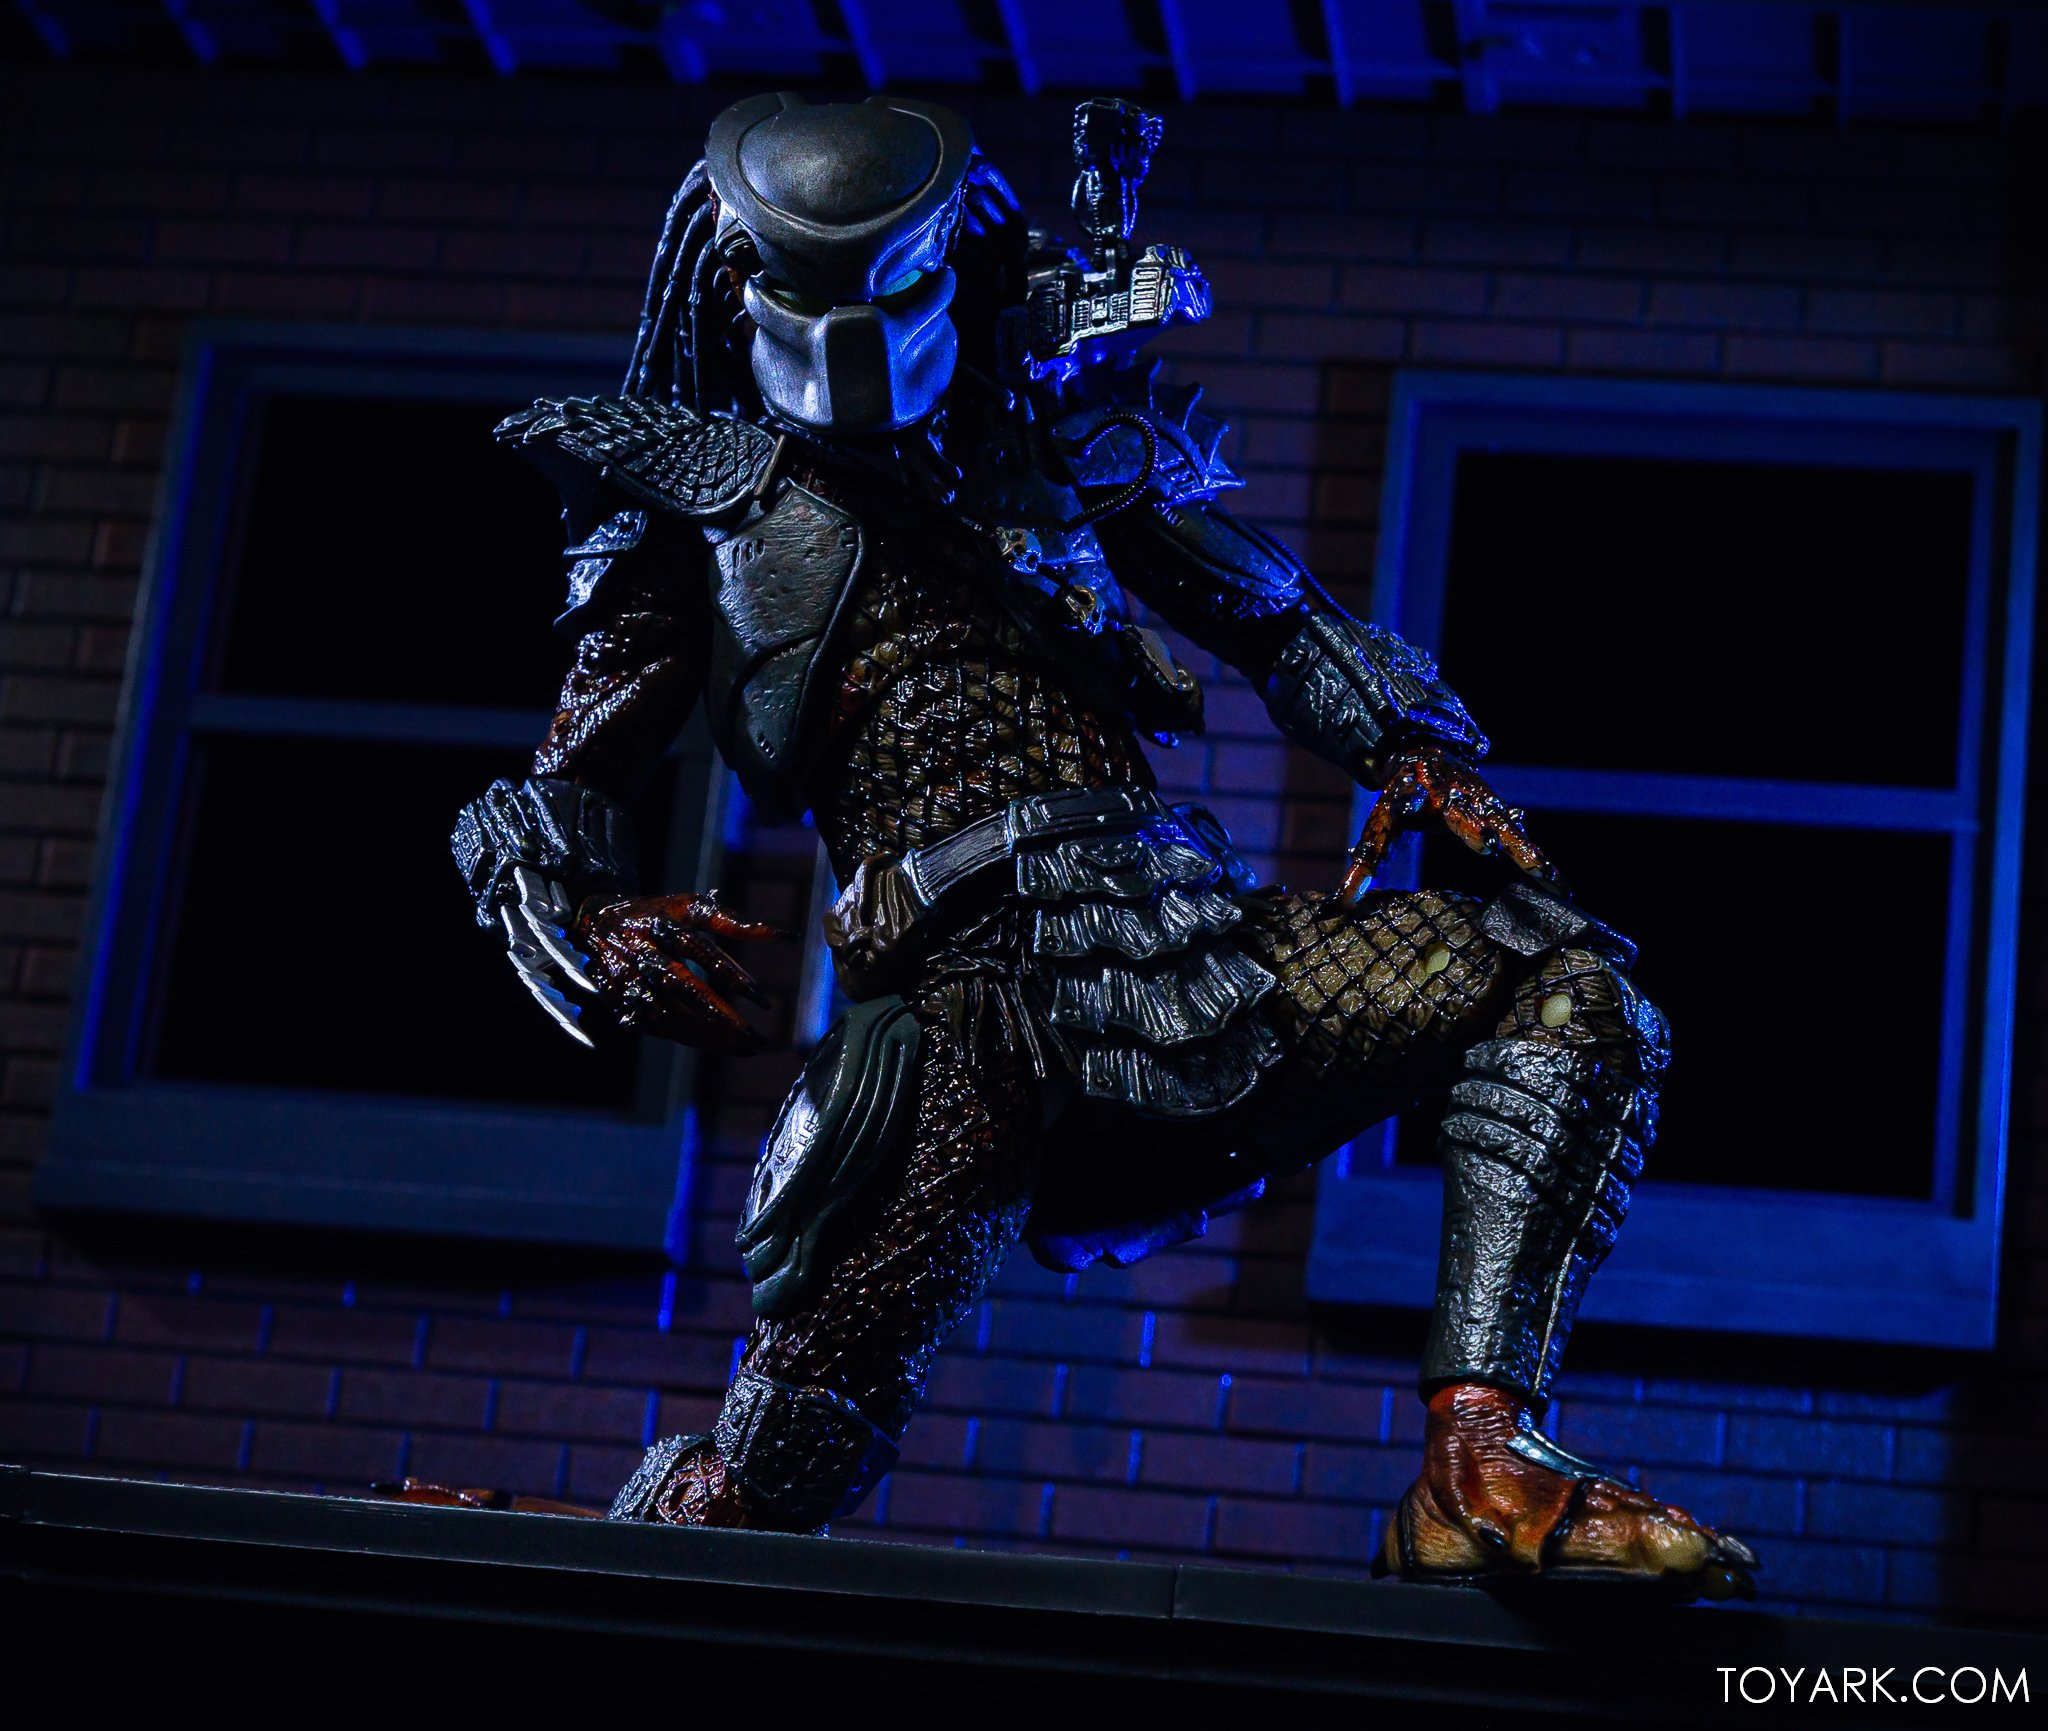 https://news.toyark.com/wp-content/uploads/sites/4/2019/09/Batman-vs-Predator-Set-036.jpg